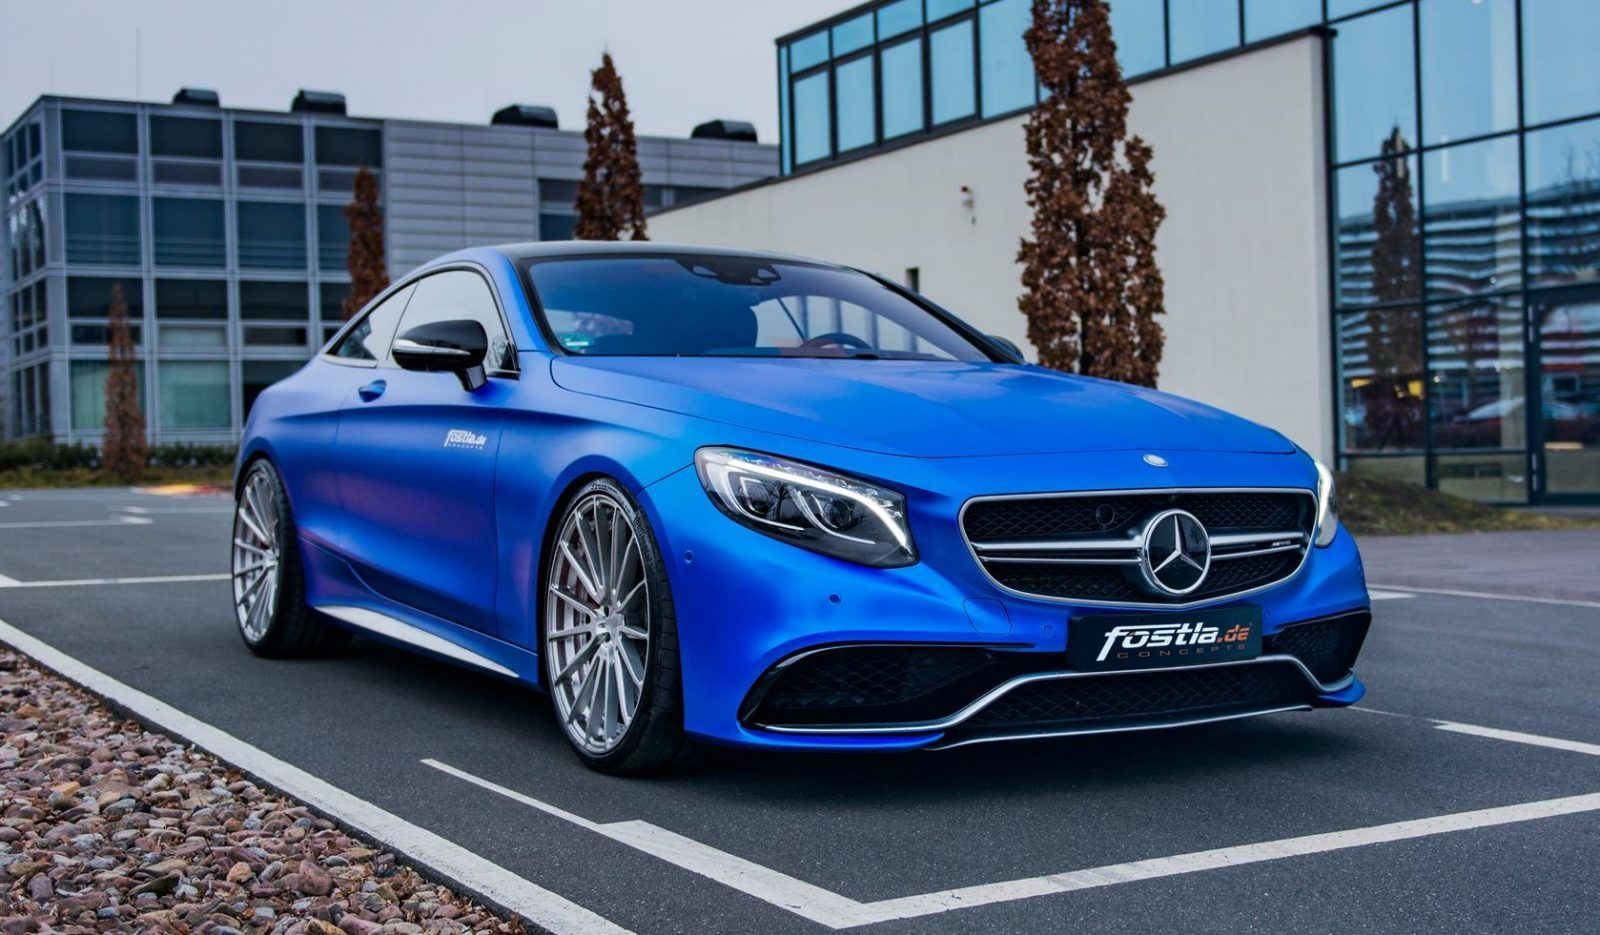 2017 mercedesamg s63 coupe by fostlade is dripping blue